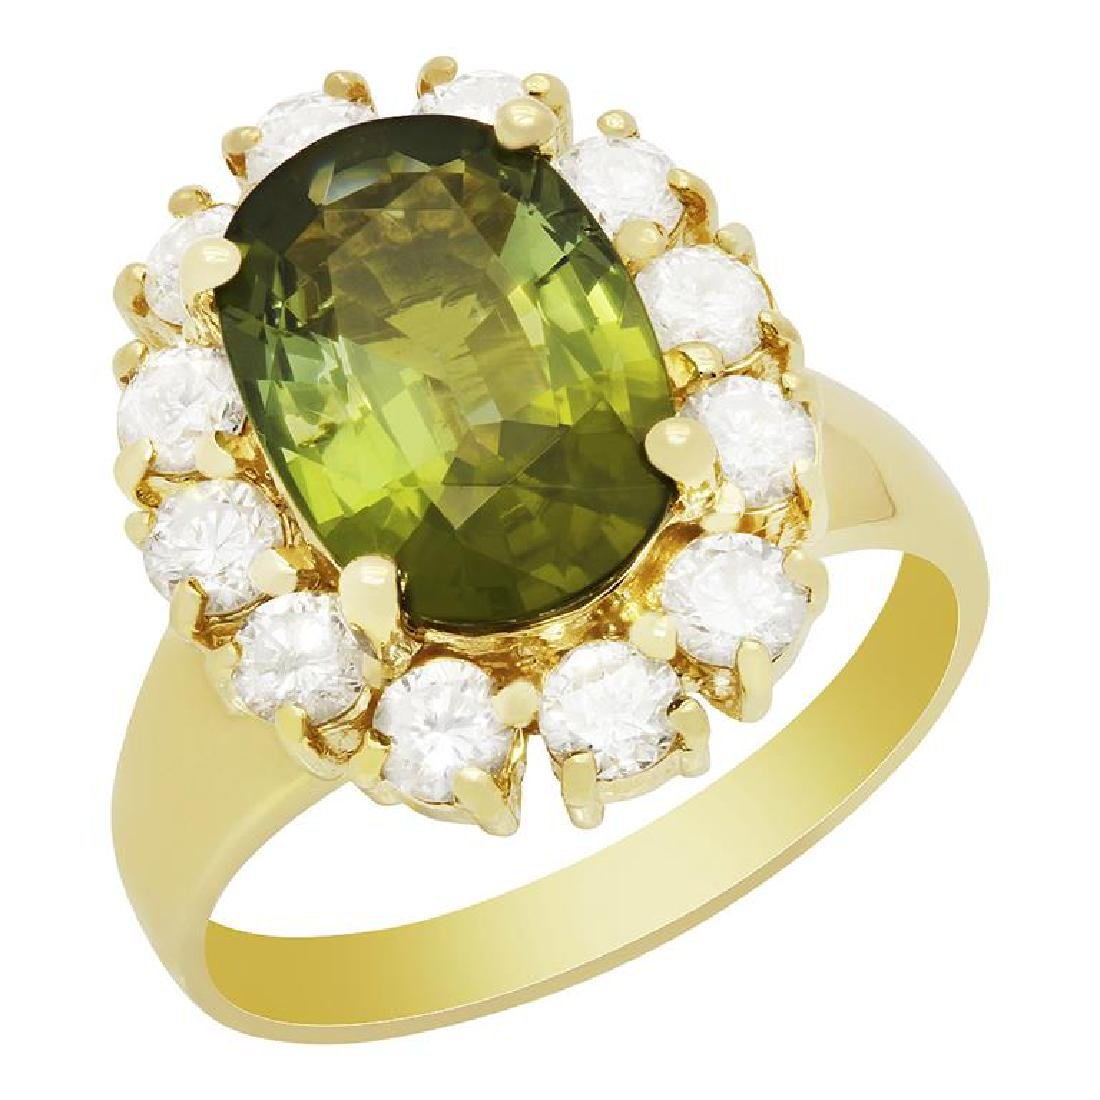 14k Yellow Gold 2.83ct Green Tourmaline 1.14ct Diamond